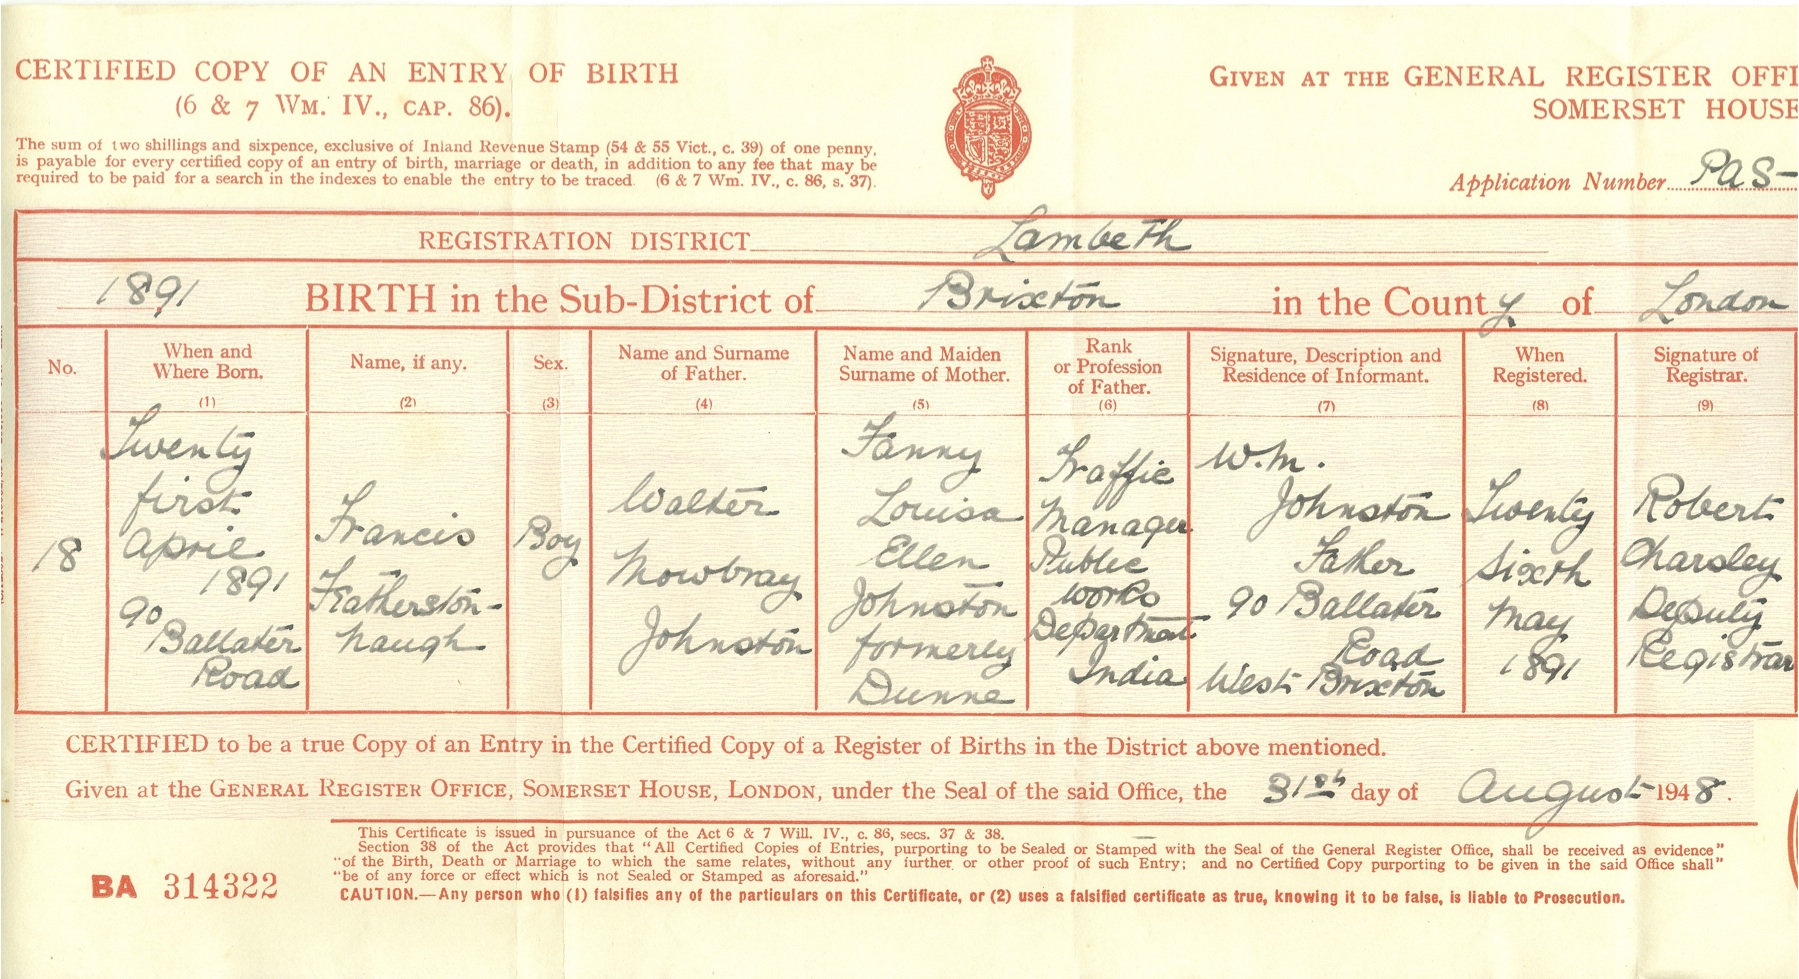 certified copy of an entry of birth application number